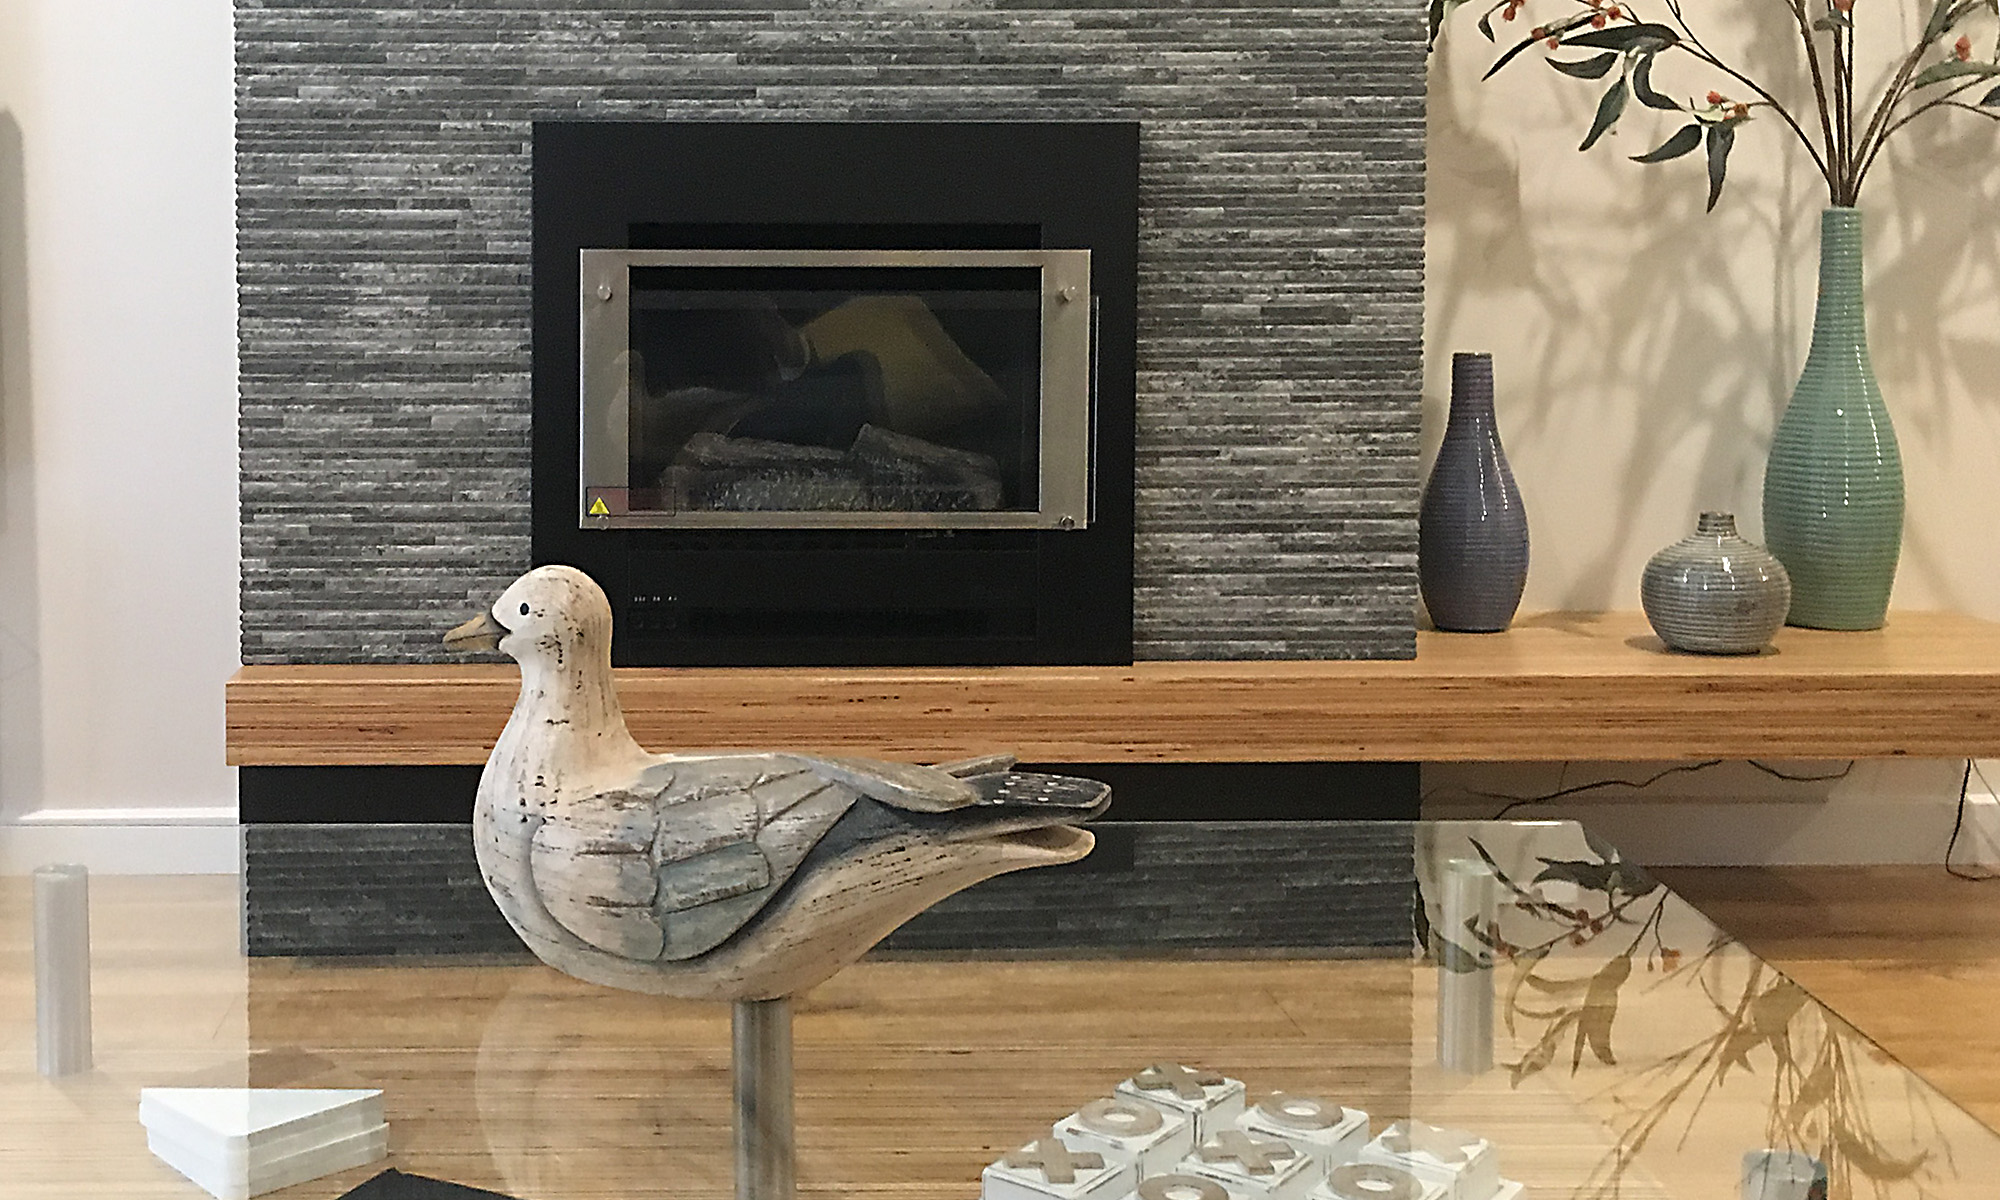 Adelaide beach holiday accommodation - gas log fire